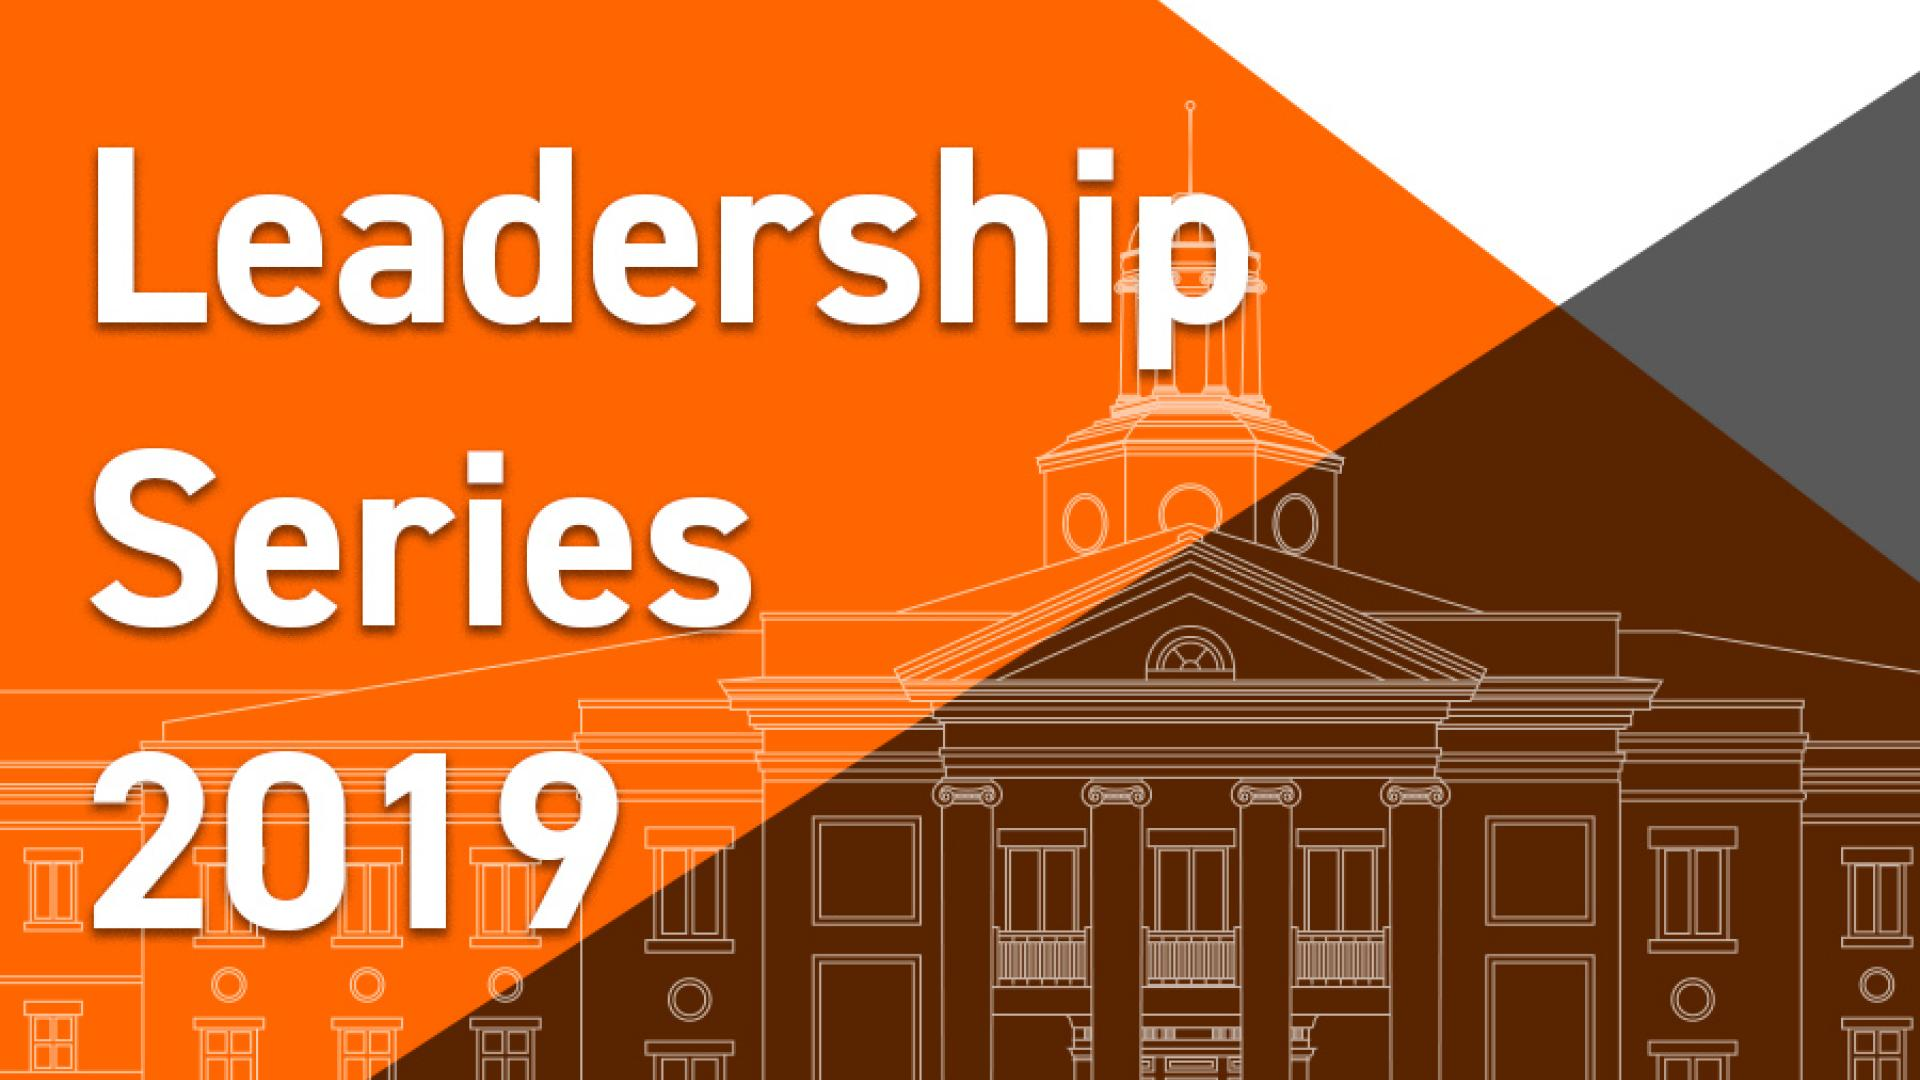 Image header for Leadership Series 2019